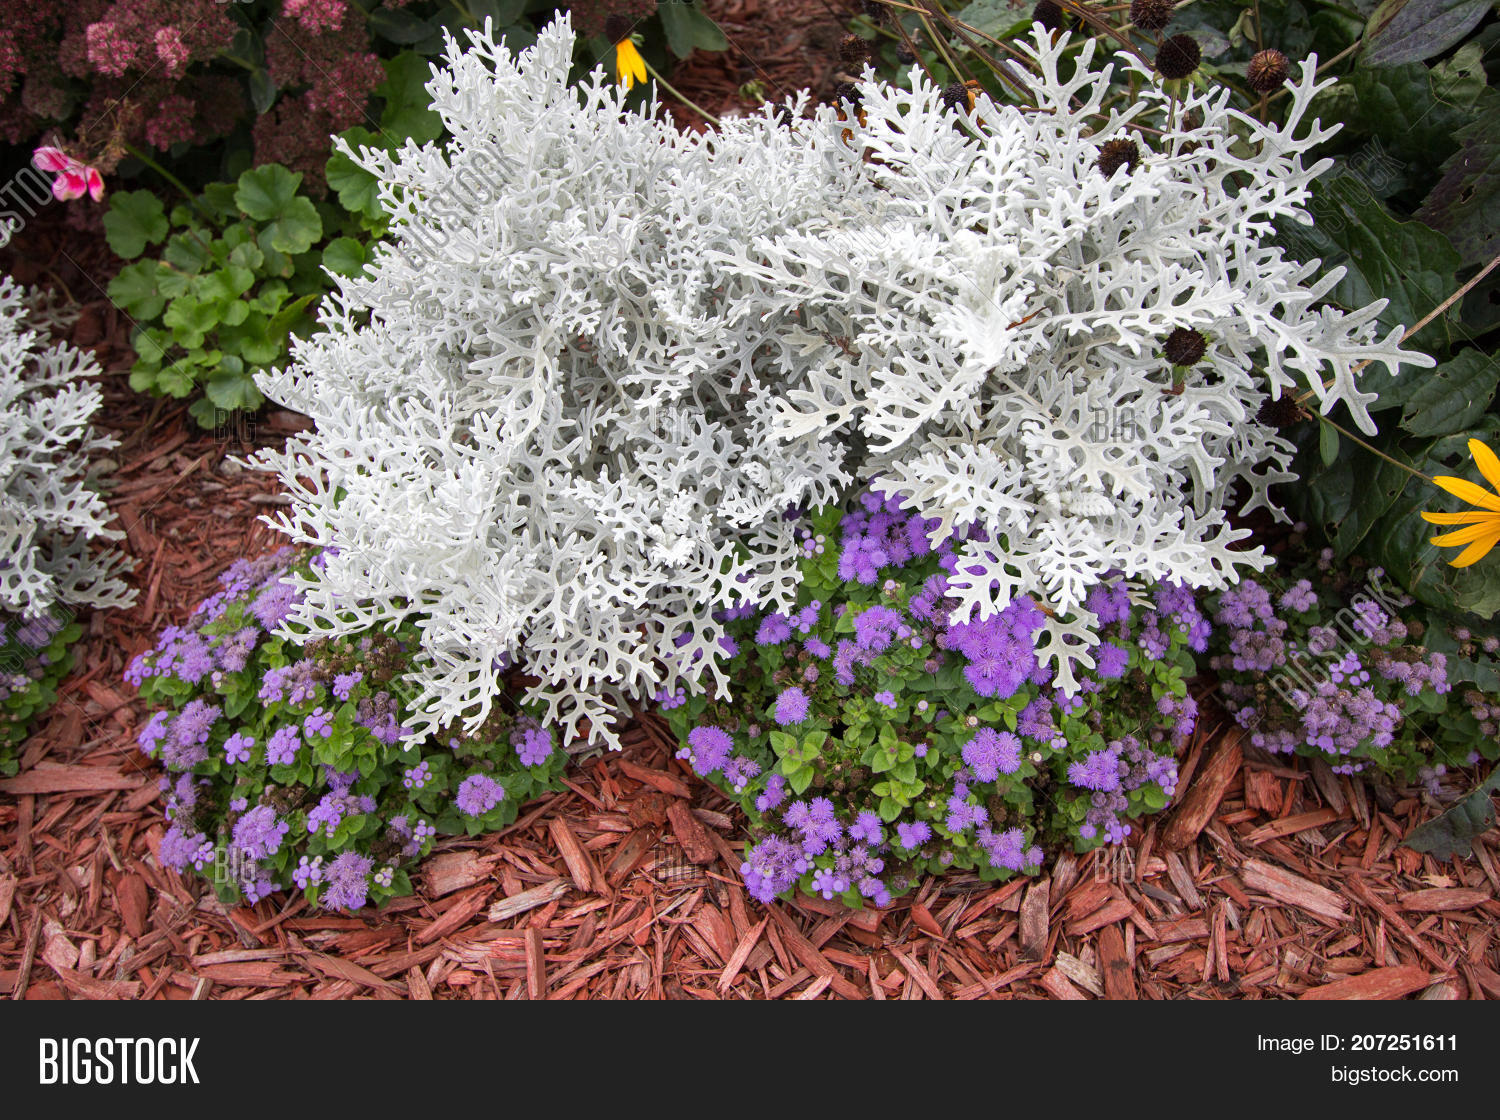 Summer garden annuals image photo free trial bigstock summer garden annuals background dusty miller plant surrounded by colorful annuals dusty miller is izmirmasajfo